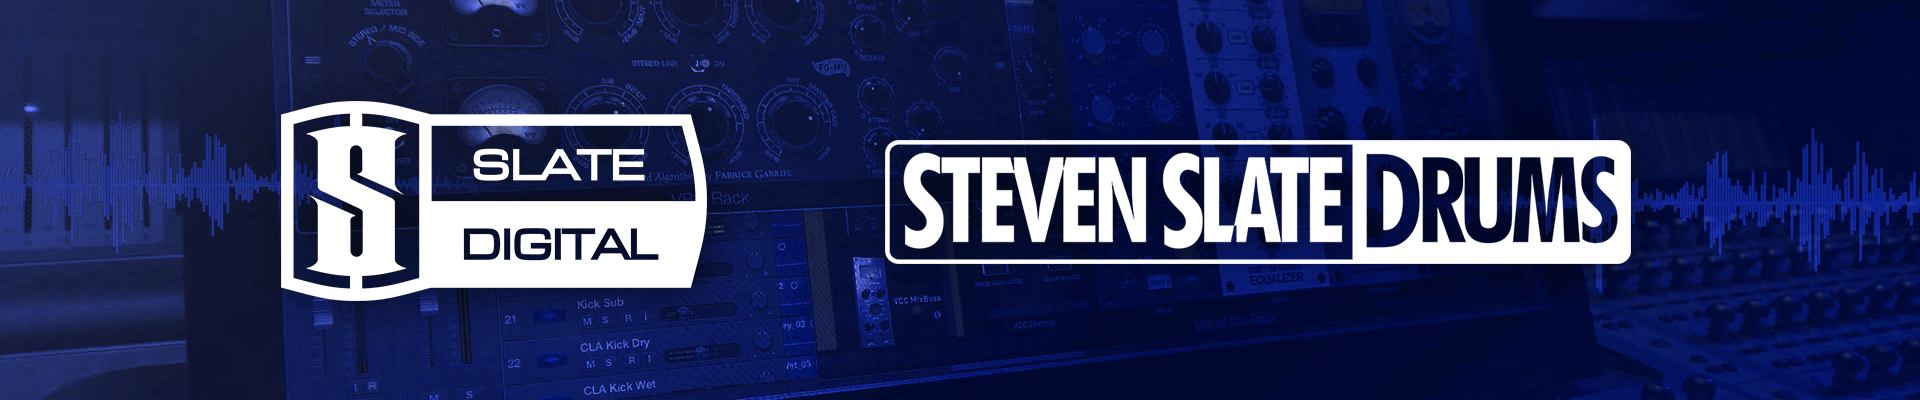 Slate Digital + Steven Slate Drums